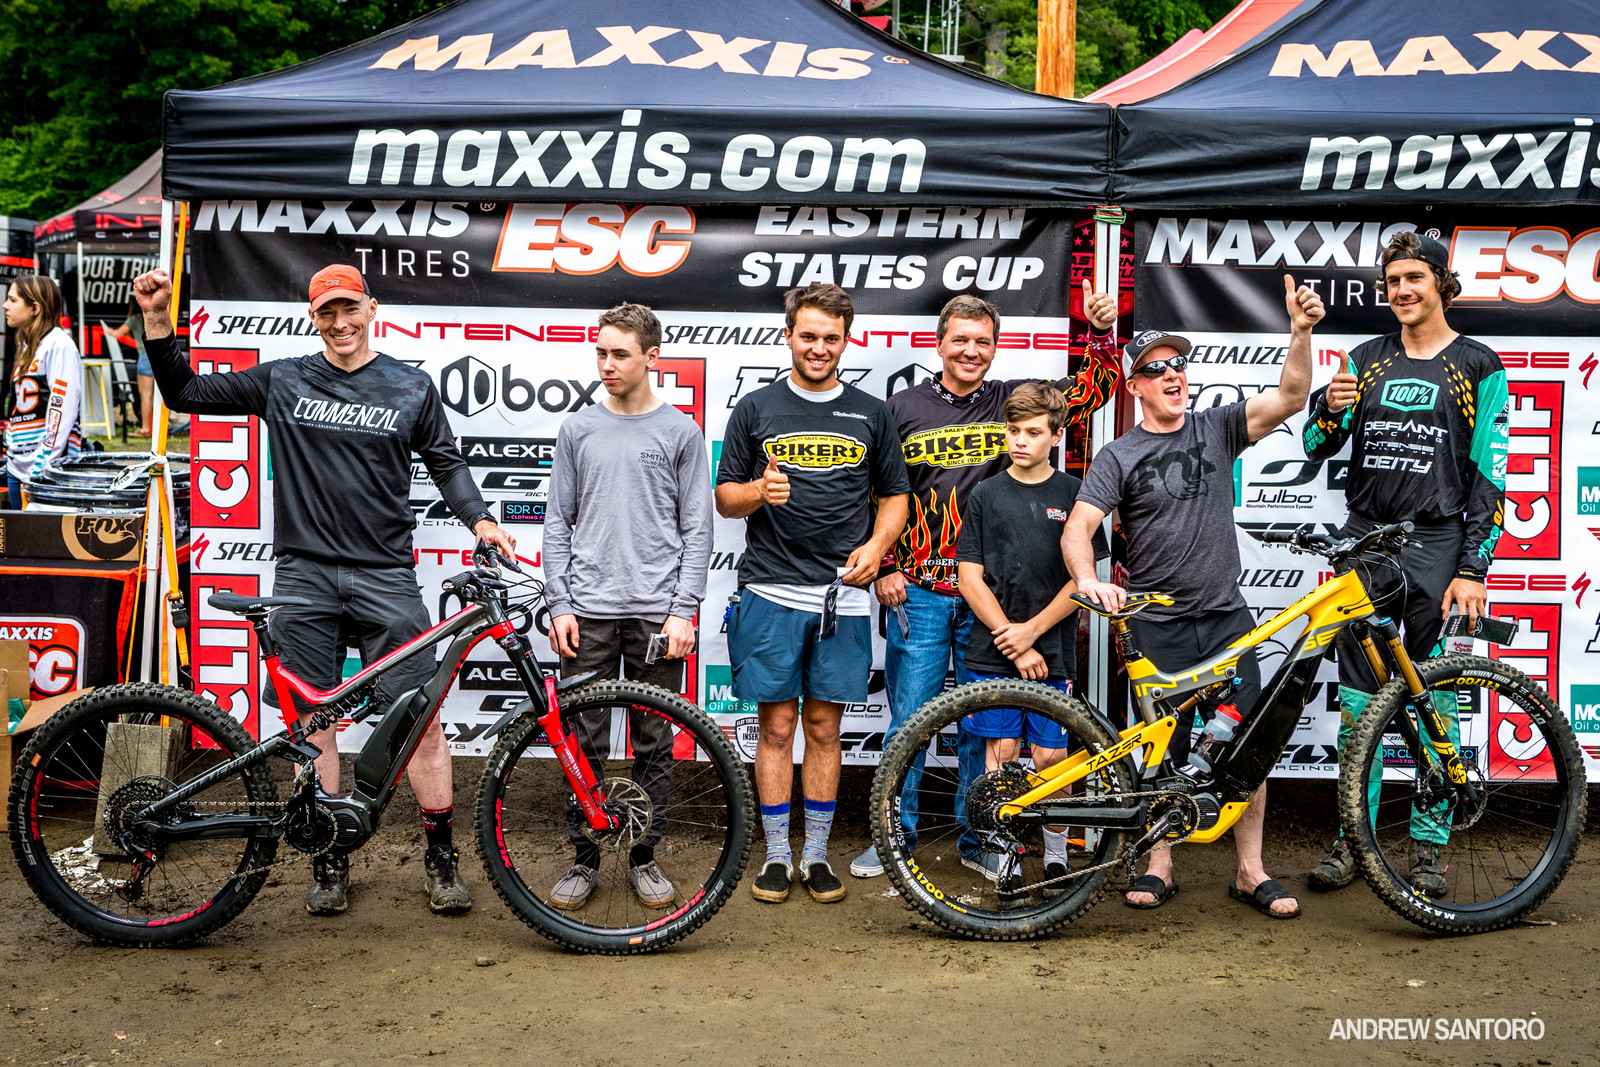 Ask any of these guys how much fun they had at the Ebike race and get out there for the next one, just don't complain when one of them beats you.